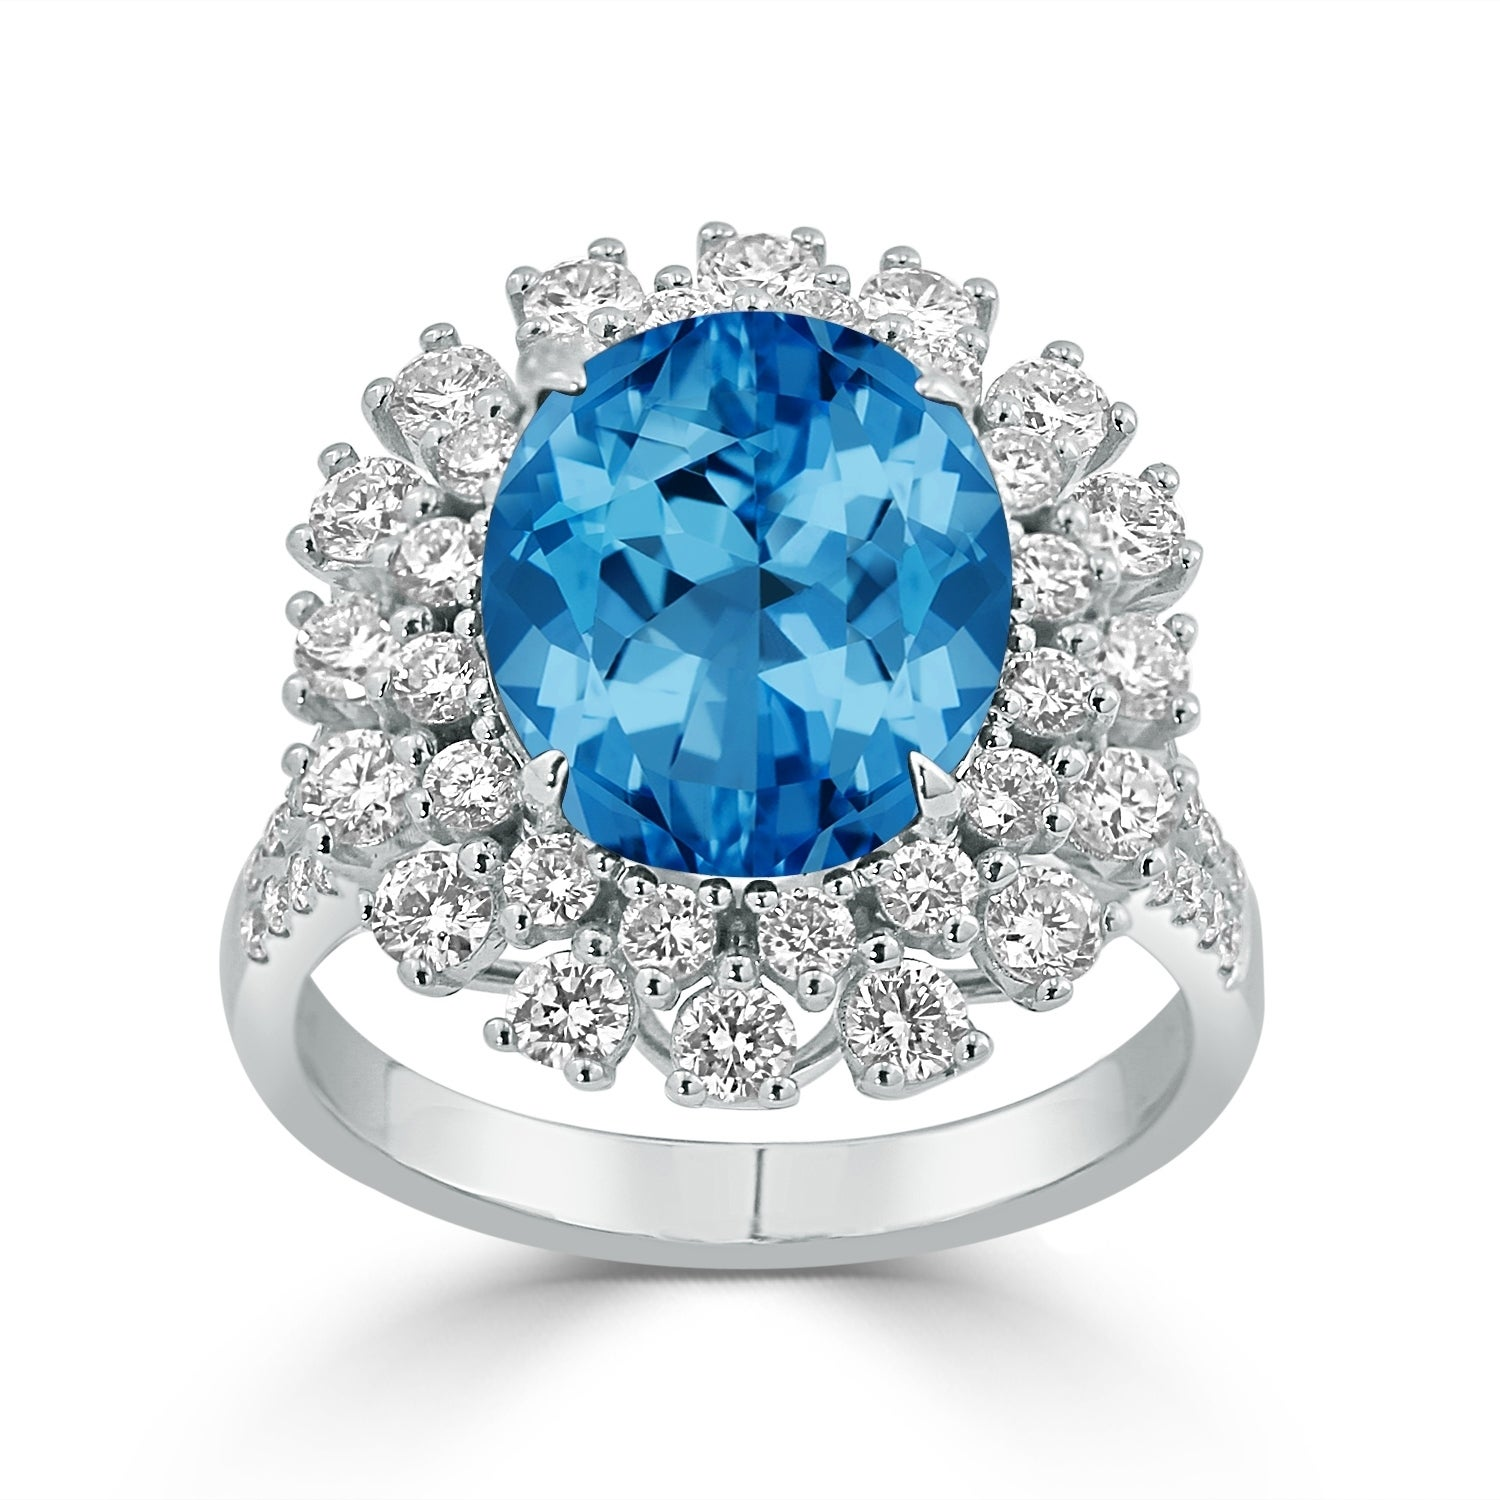 Auriya 4 3/4ct Fancy Oval-cut Swiss Blue Topaz and 1 3/8ctw Halo Diamond Engagement Ring 18K Gold (6.5)